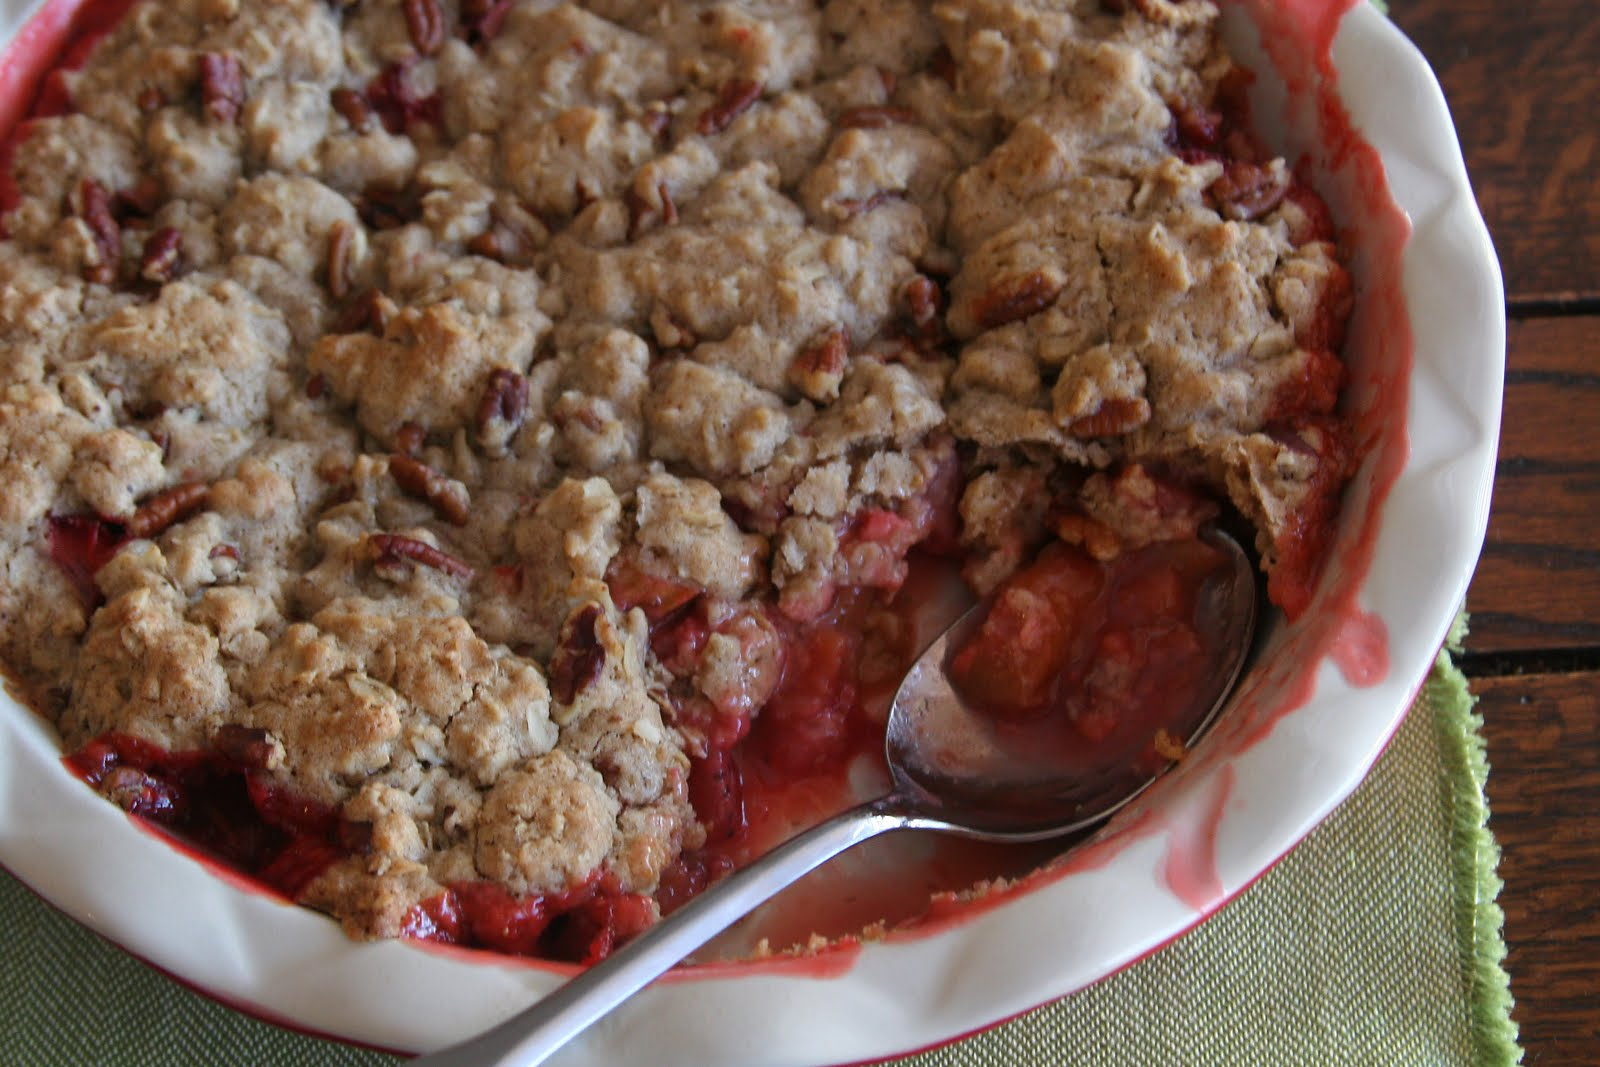 Strawberry-Rhubarb Cobbler - Espresso and CreamEspresso and Cream